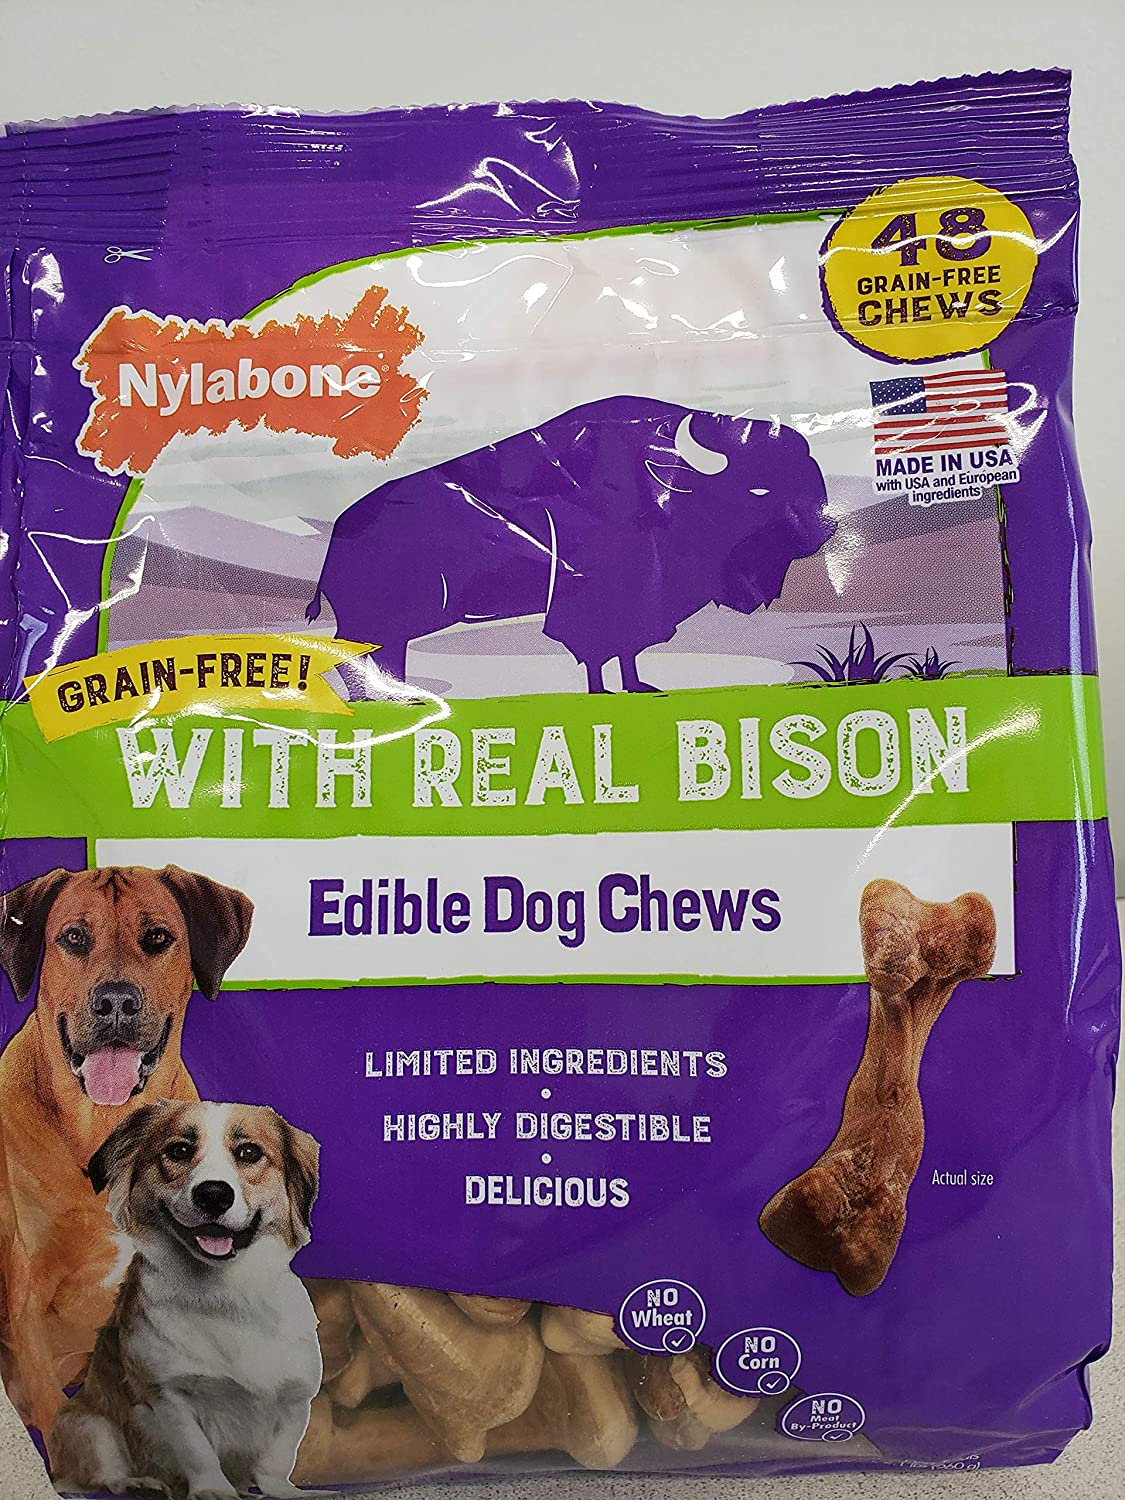 Nylabone Dog Chew Grain Free Edible with Real Bison Highly Digestible No Corn No Meat by- Product (40 Chew)